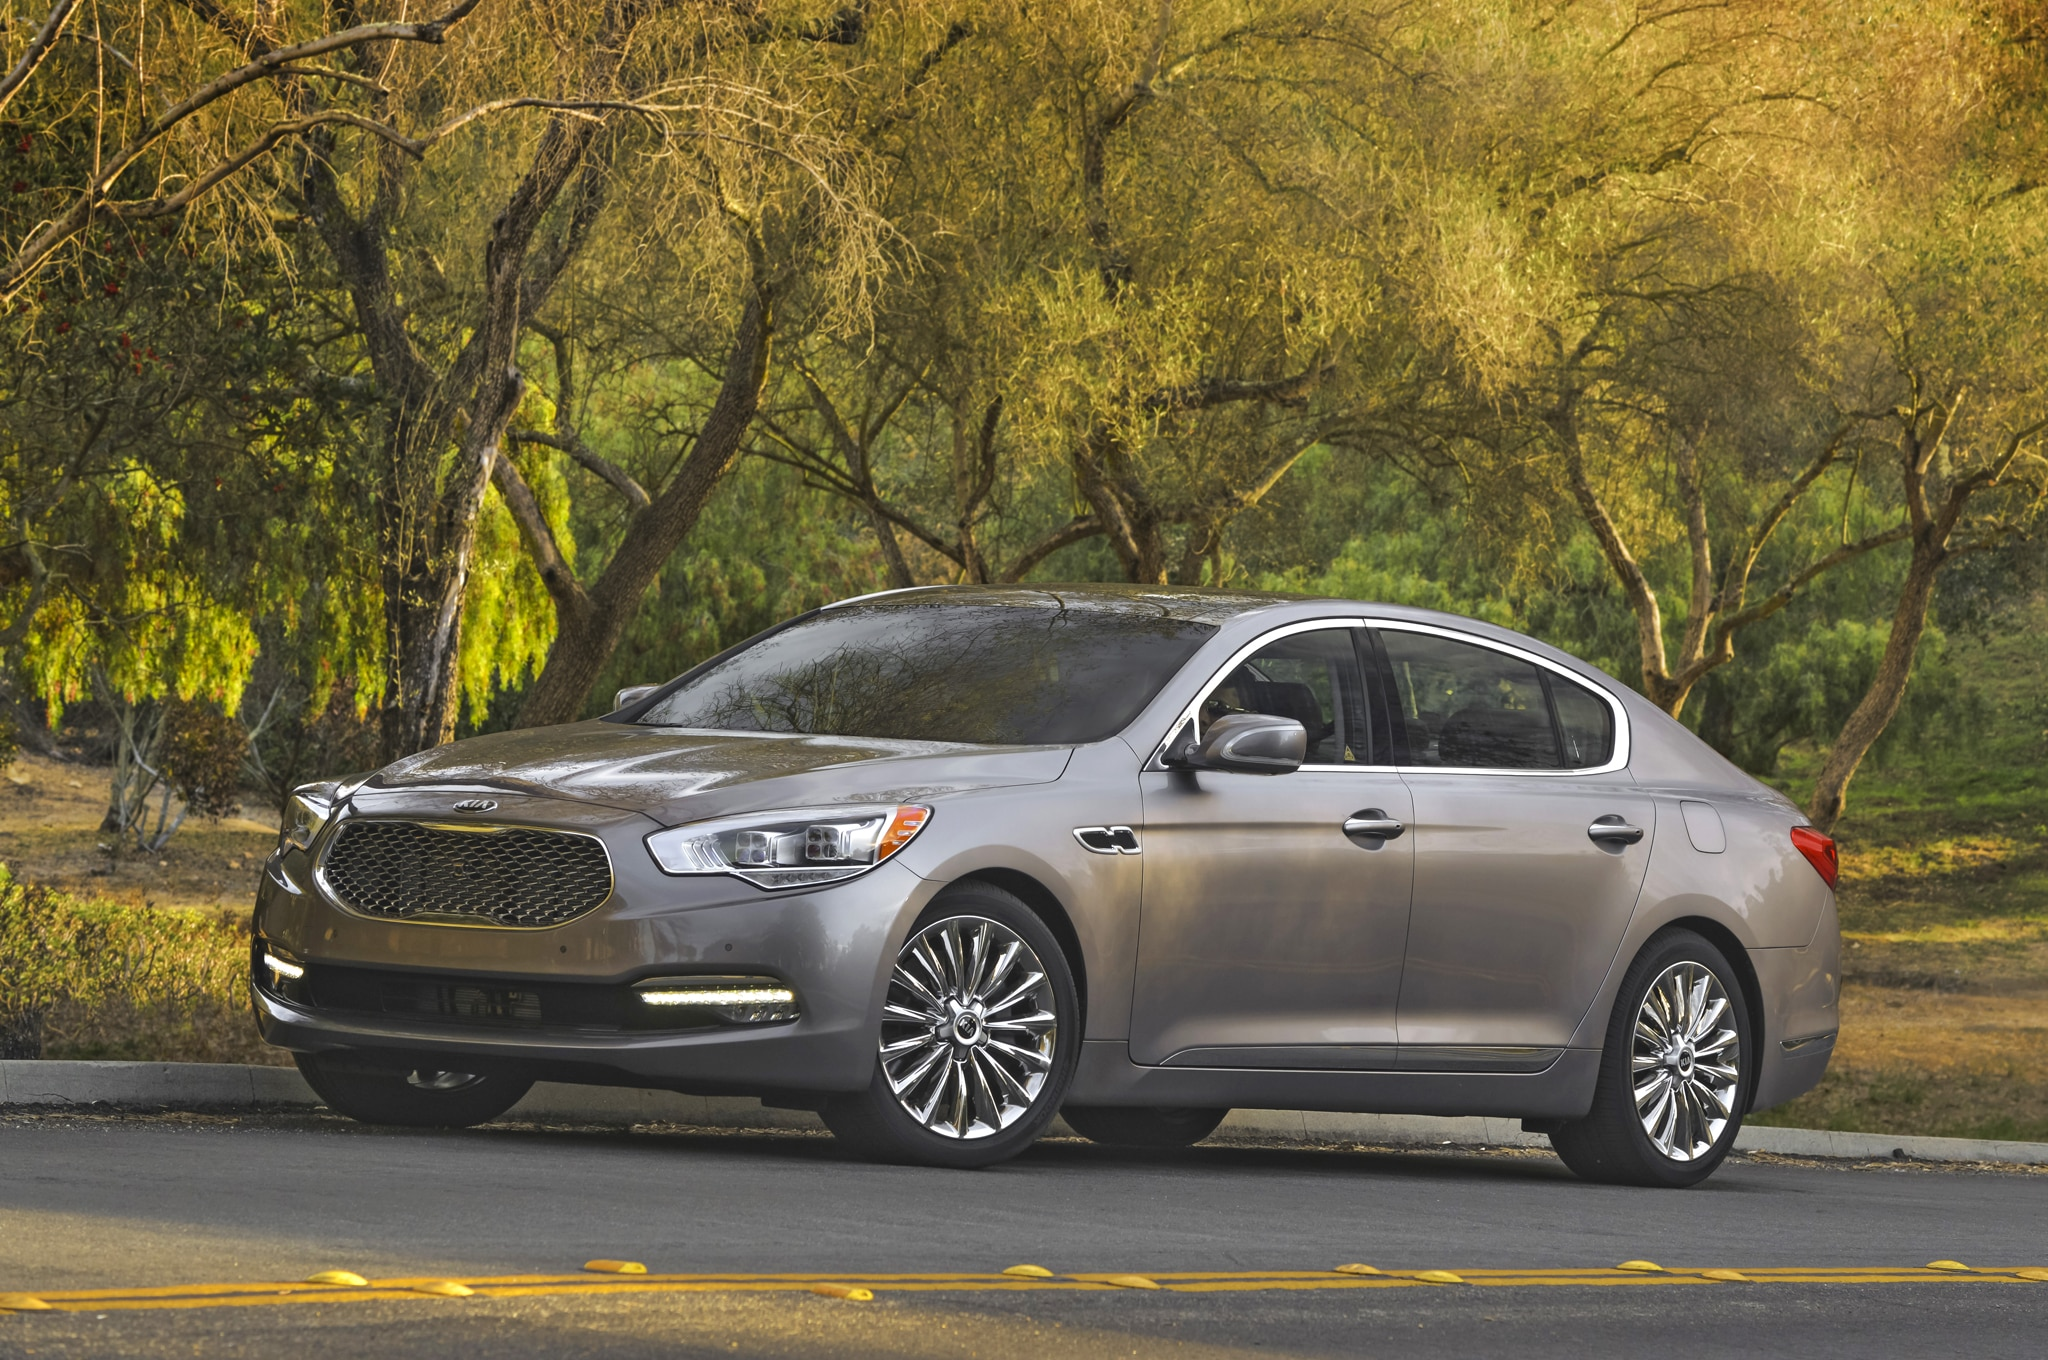 autotrader cost photos reviews research trims specs options price kia ca